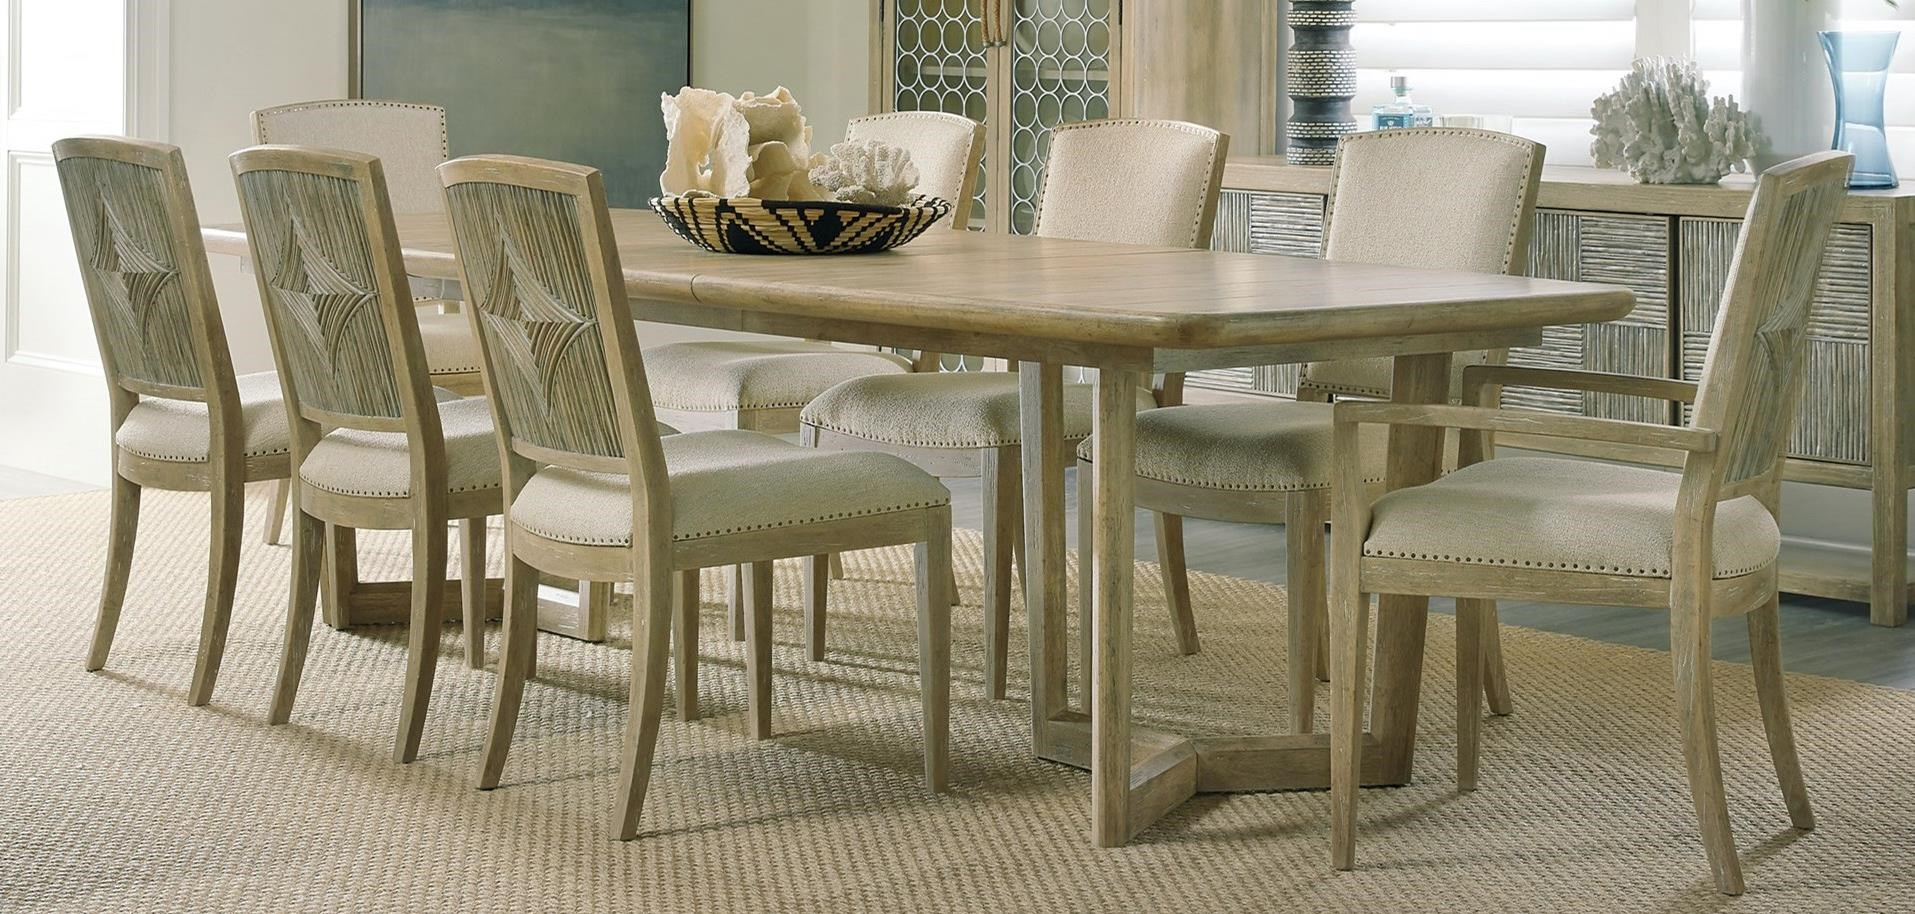 Surfrider 9-Piece Dining Table and Chair Set by Hooker Furniture at Baer's Furniture